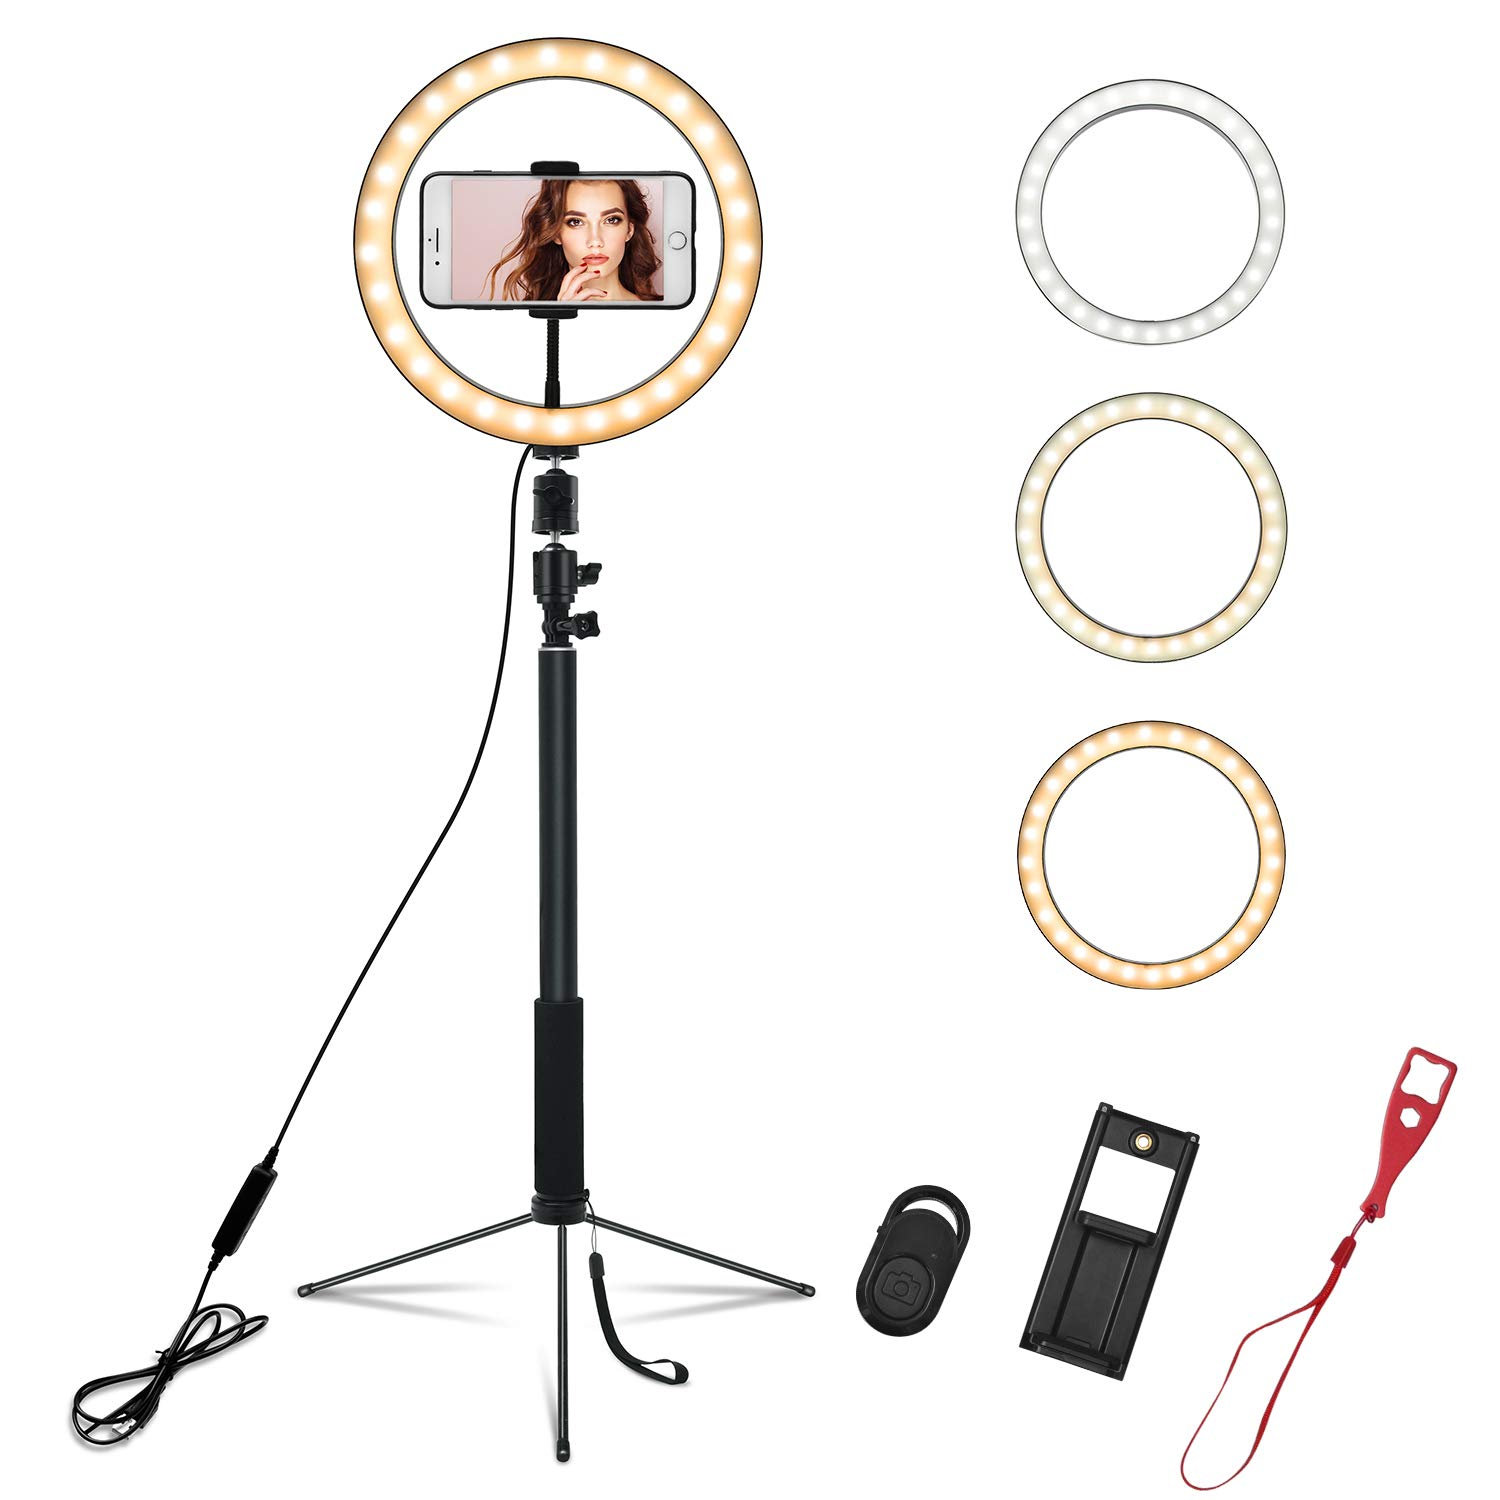 LED Ring Light 10'' with Tripod Stand & Phone Holder, Ring Light Kit for Selfie Live Streaming & YouTube Video Makeup, LED Camera Light with 3 Light Modes & 10 Brightness Level for iPhone Android